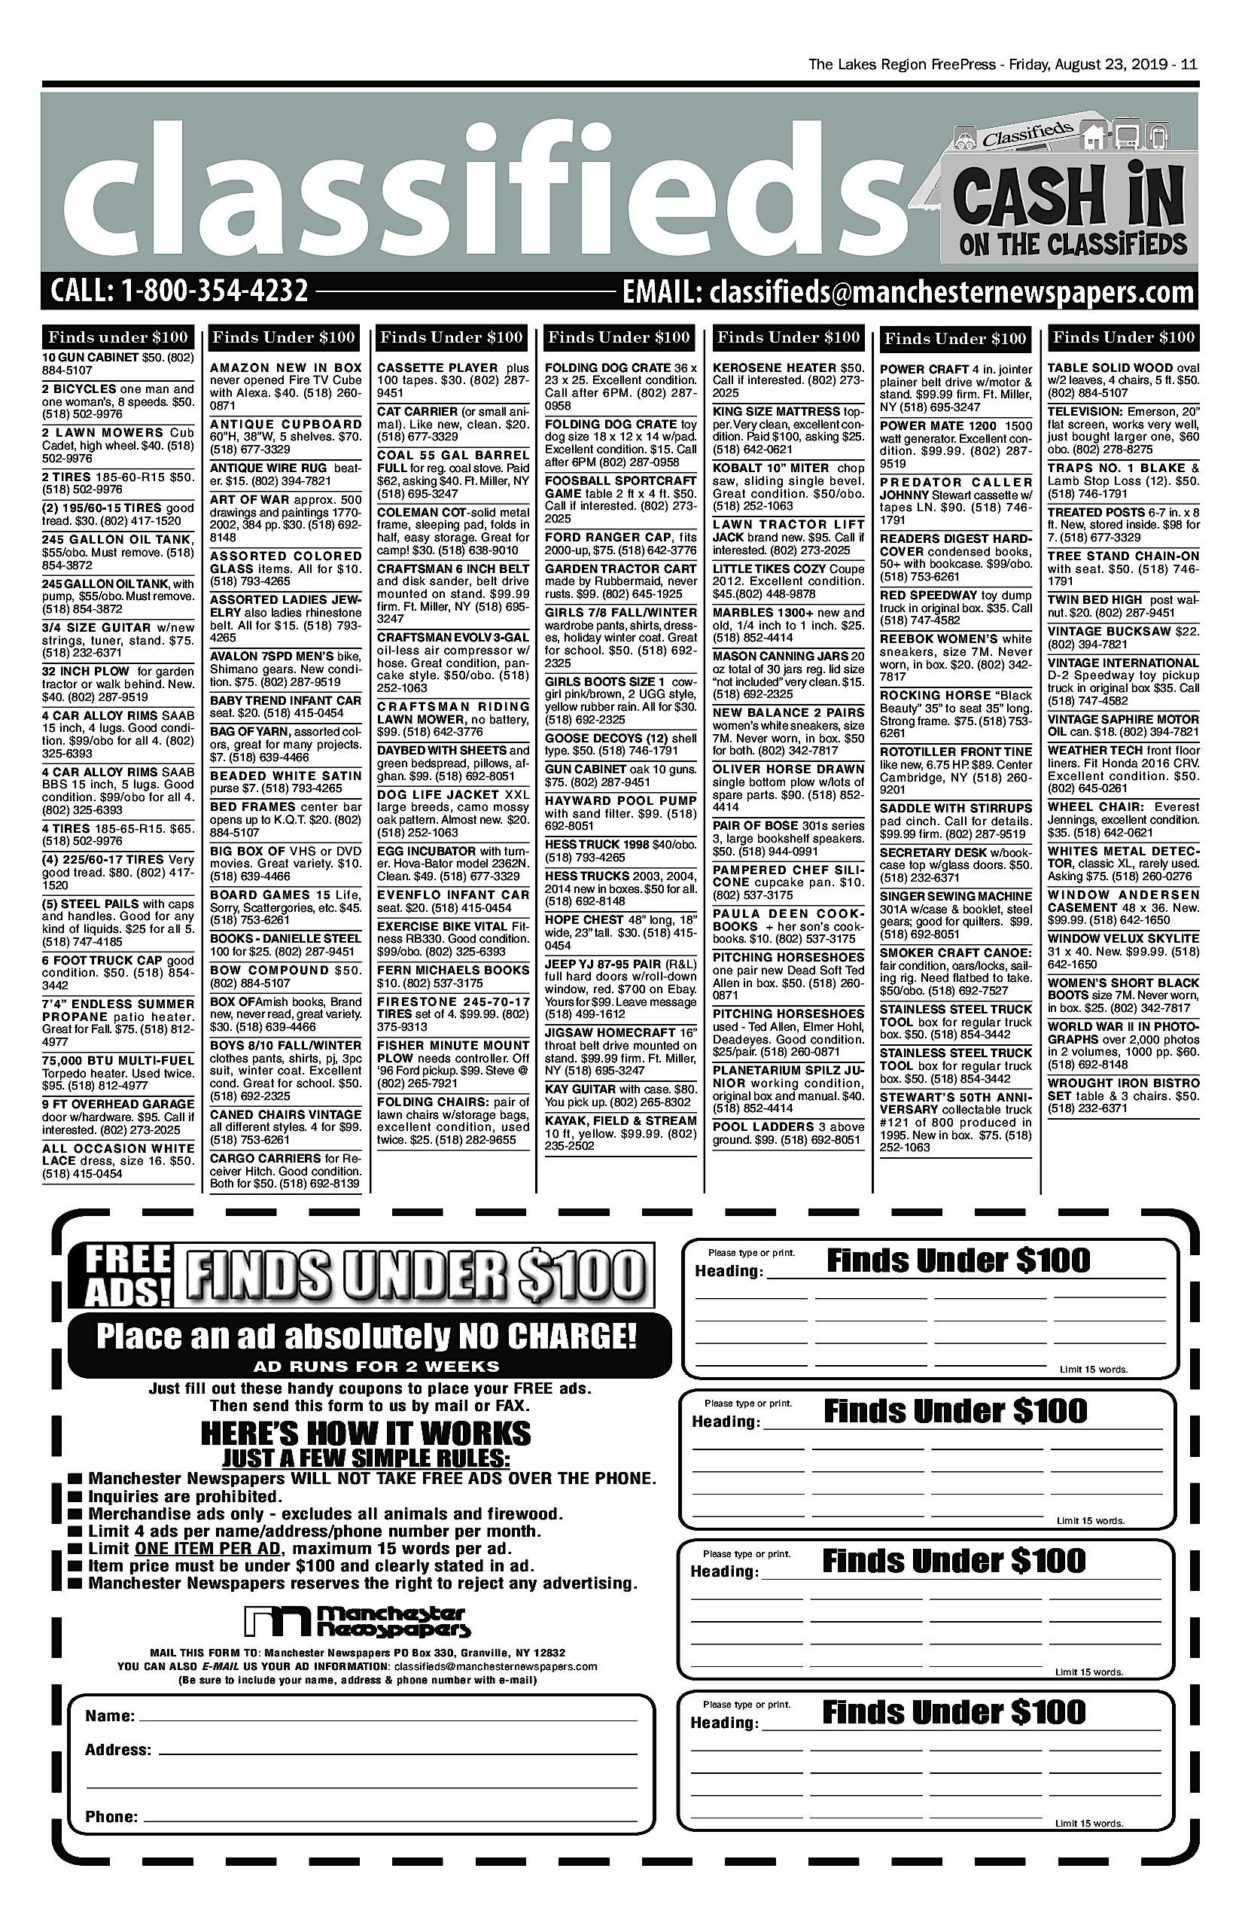 Lakes Classifieds – 08/23/19